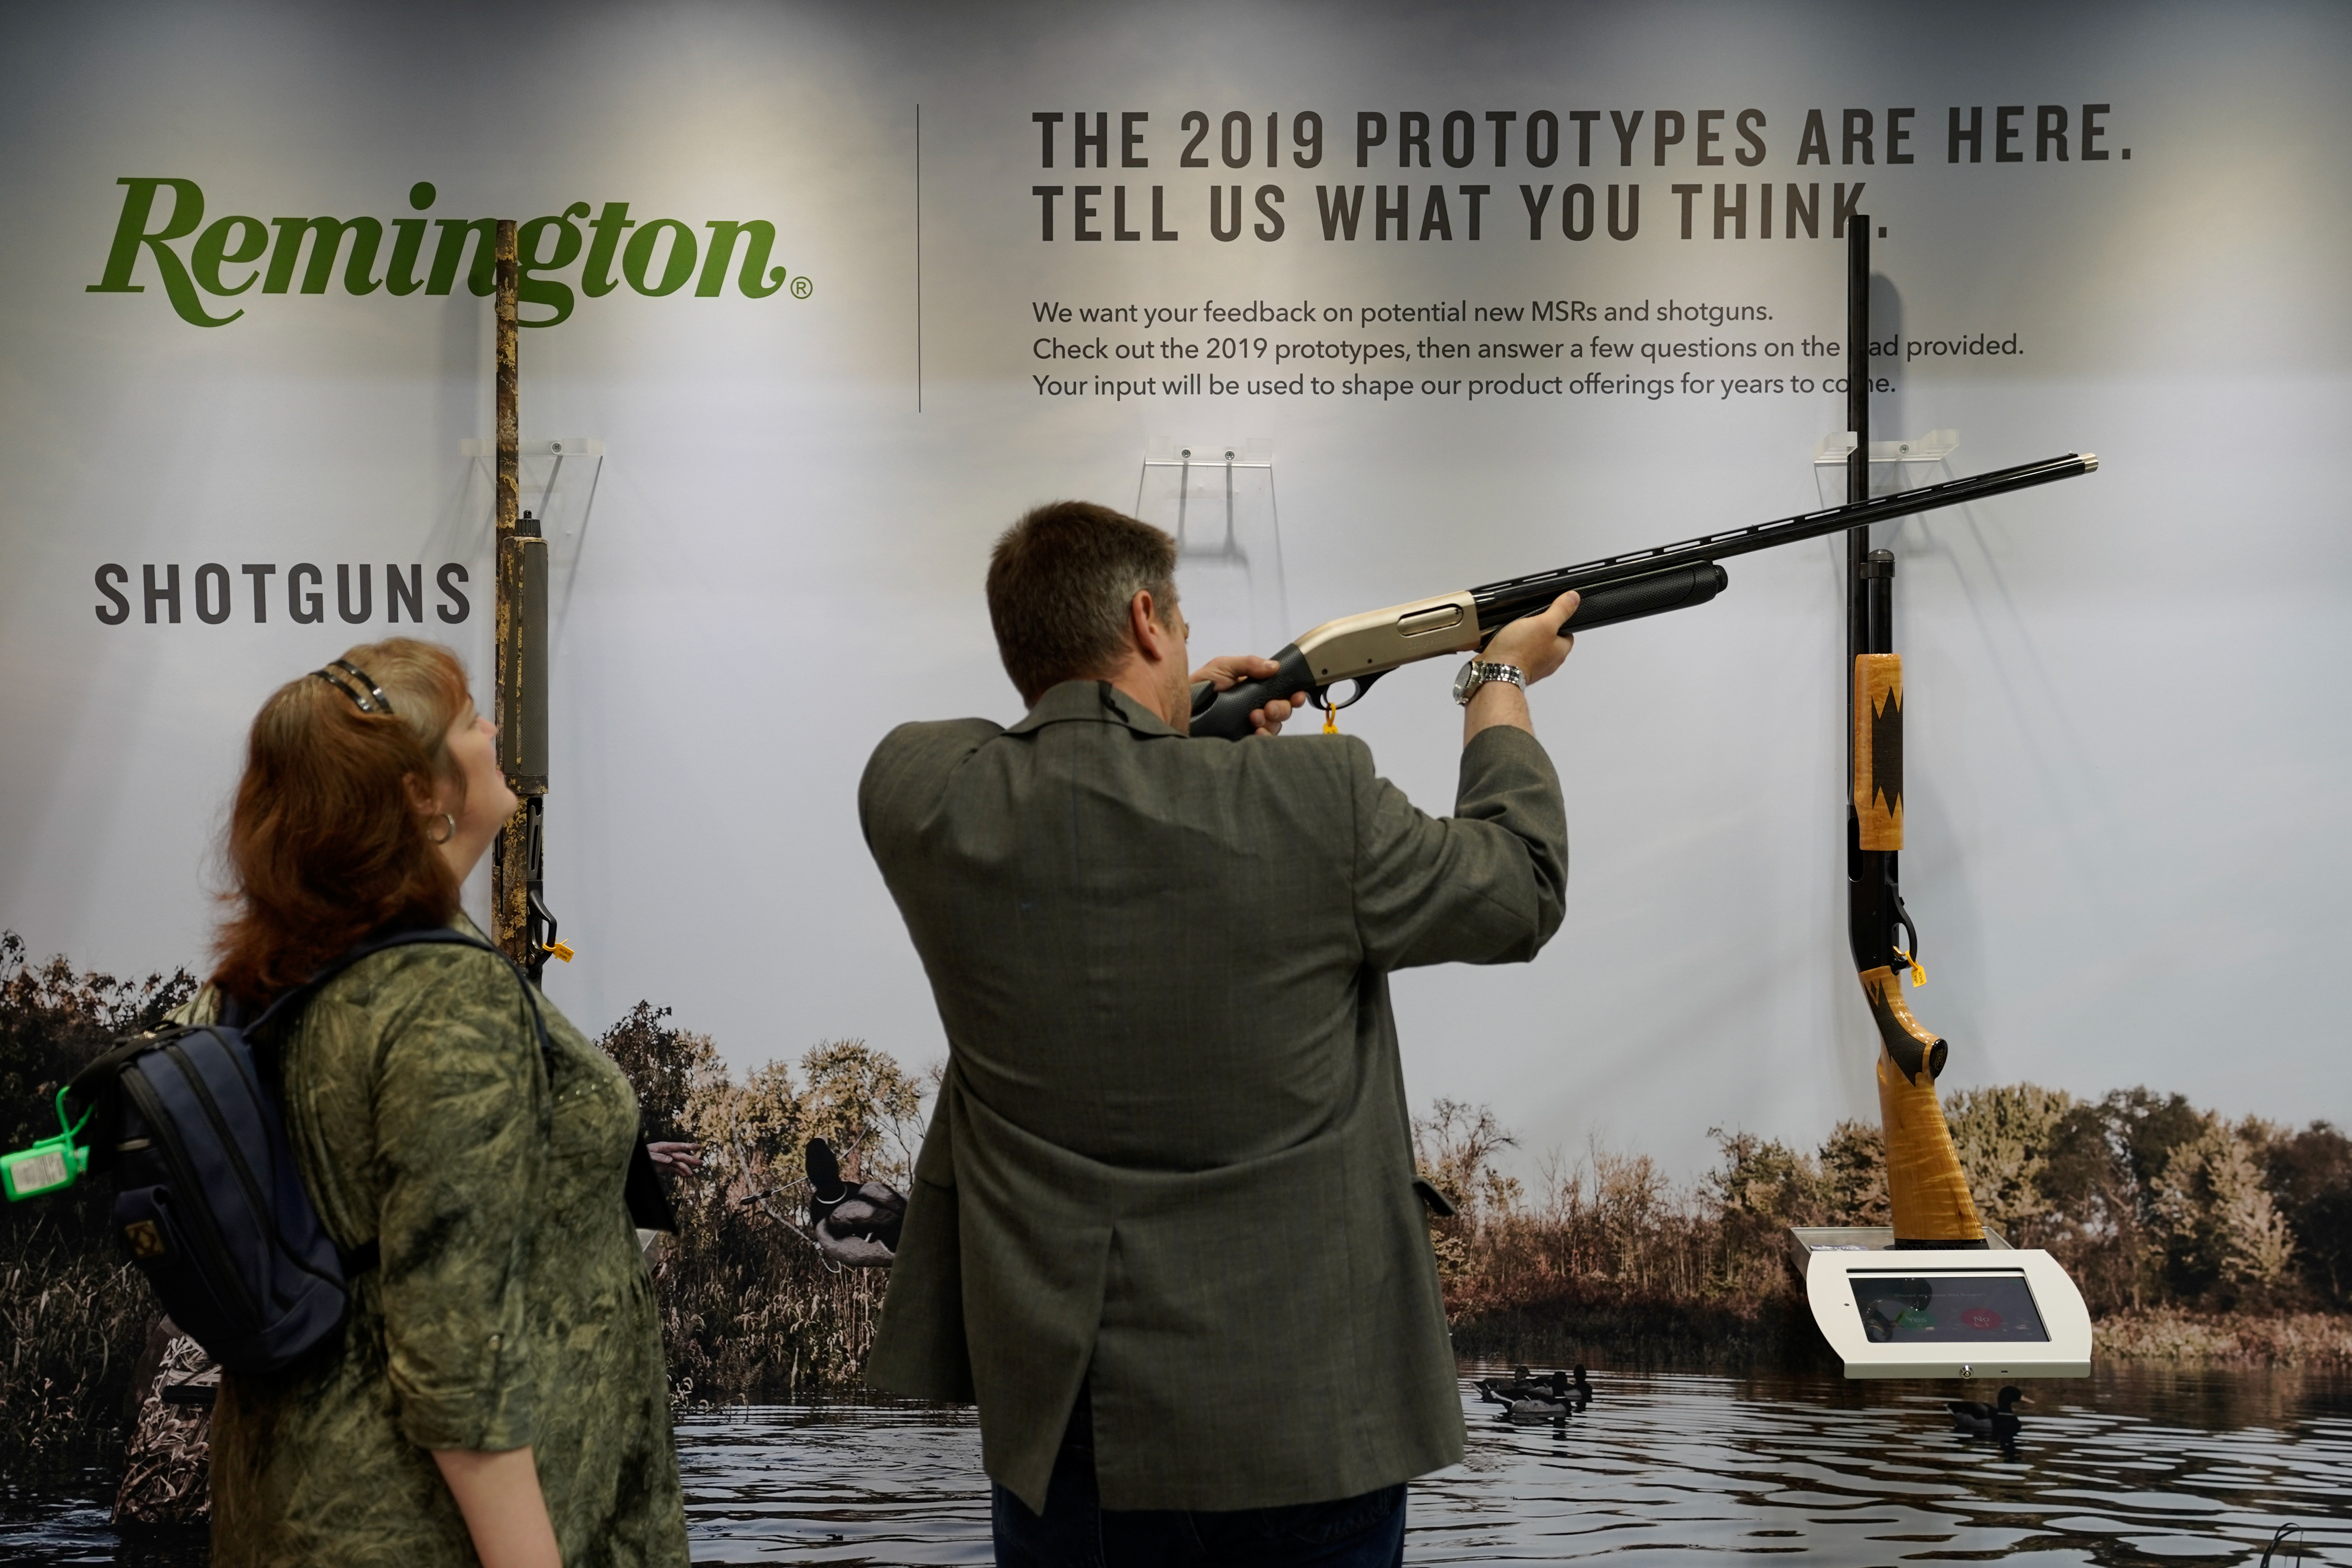 Attendees examine a Remington shotgun at the National Rifle Association's (NRA) annual meeting, in Indianapolis, Indiana, U.S., April 28, 2019.  REUTERS/Bryan Woolston